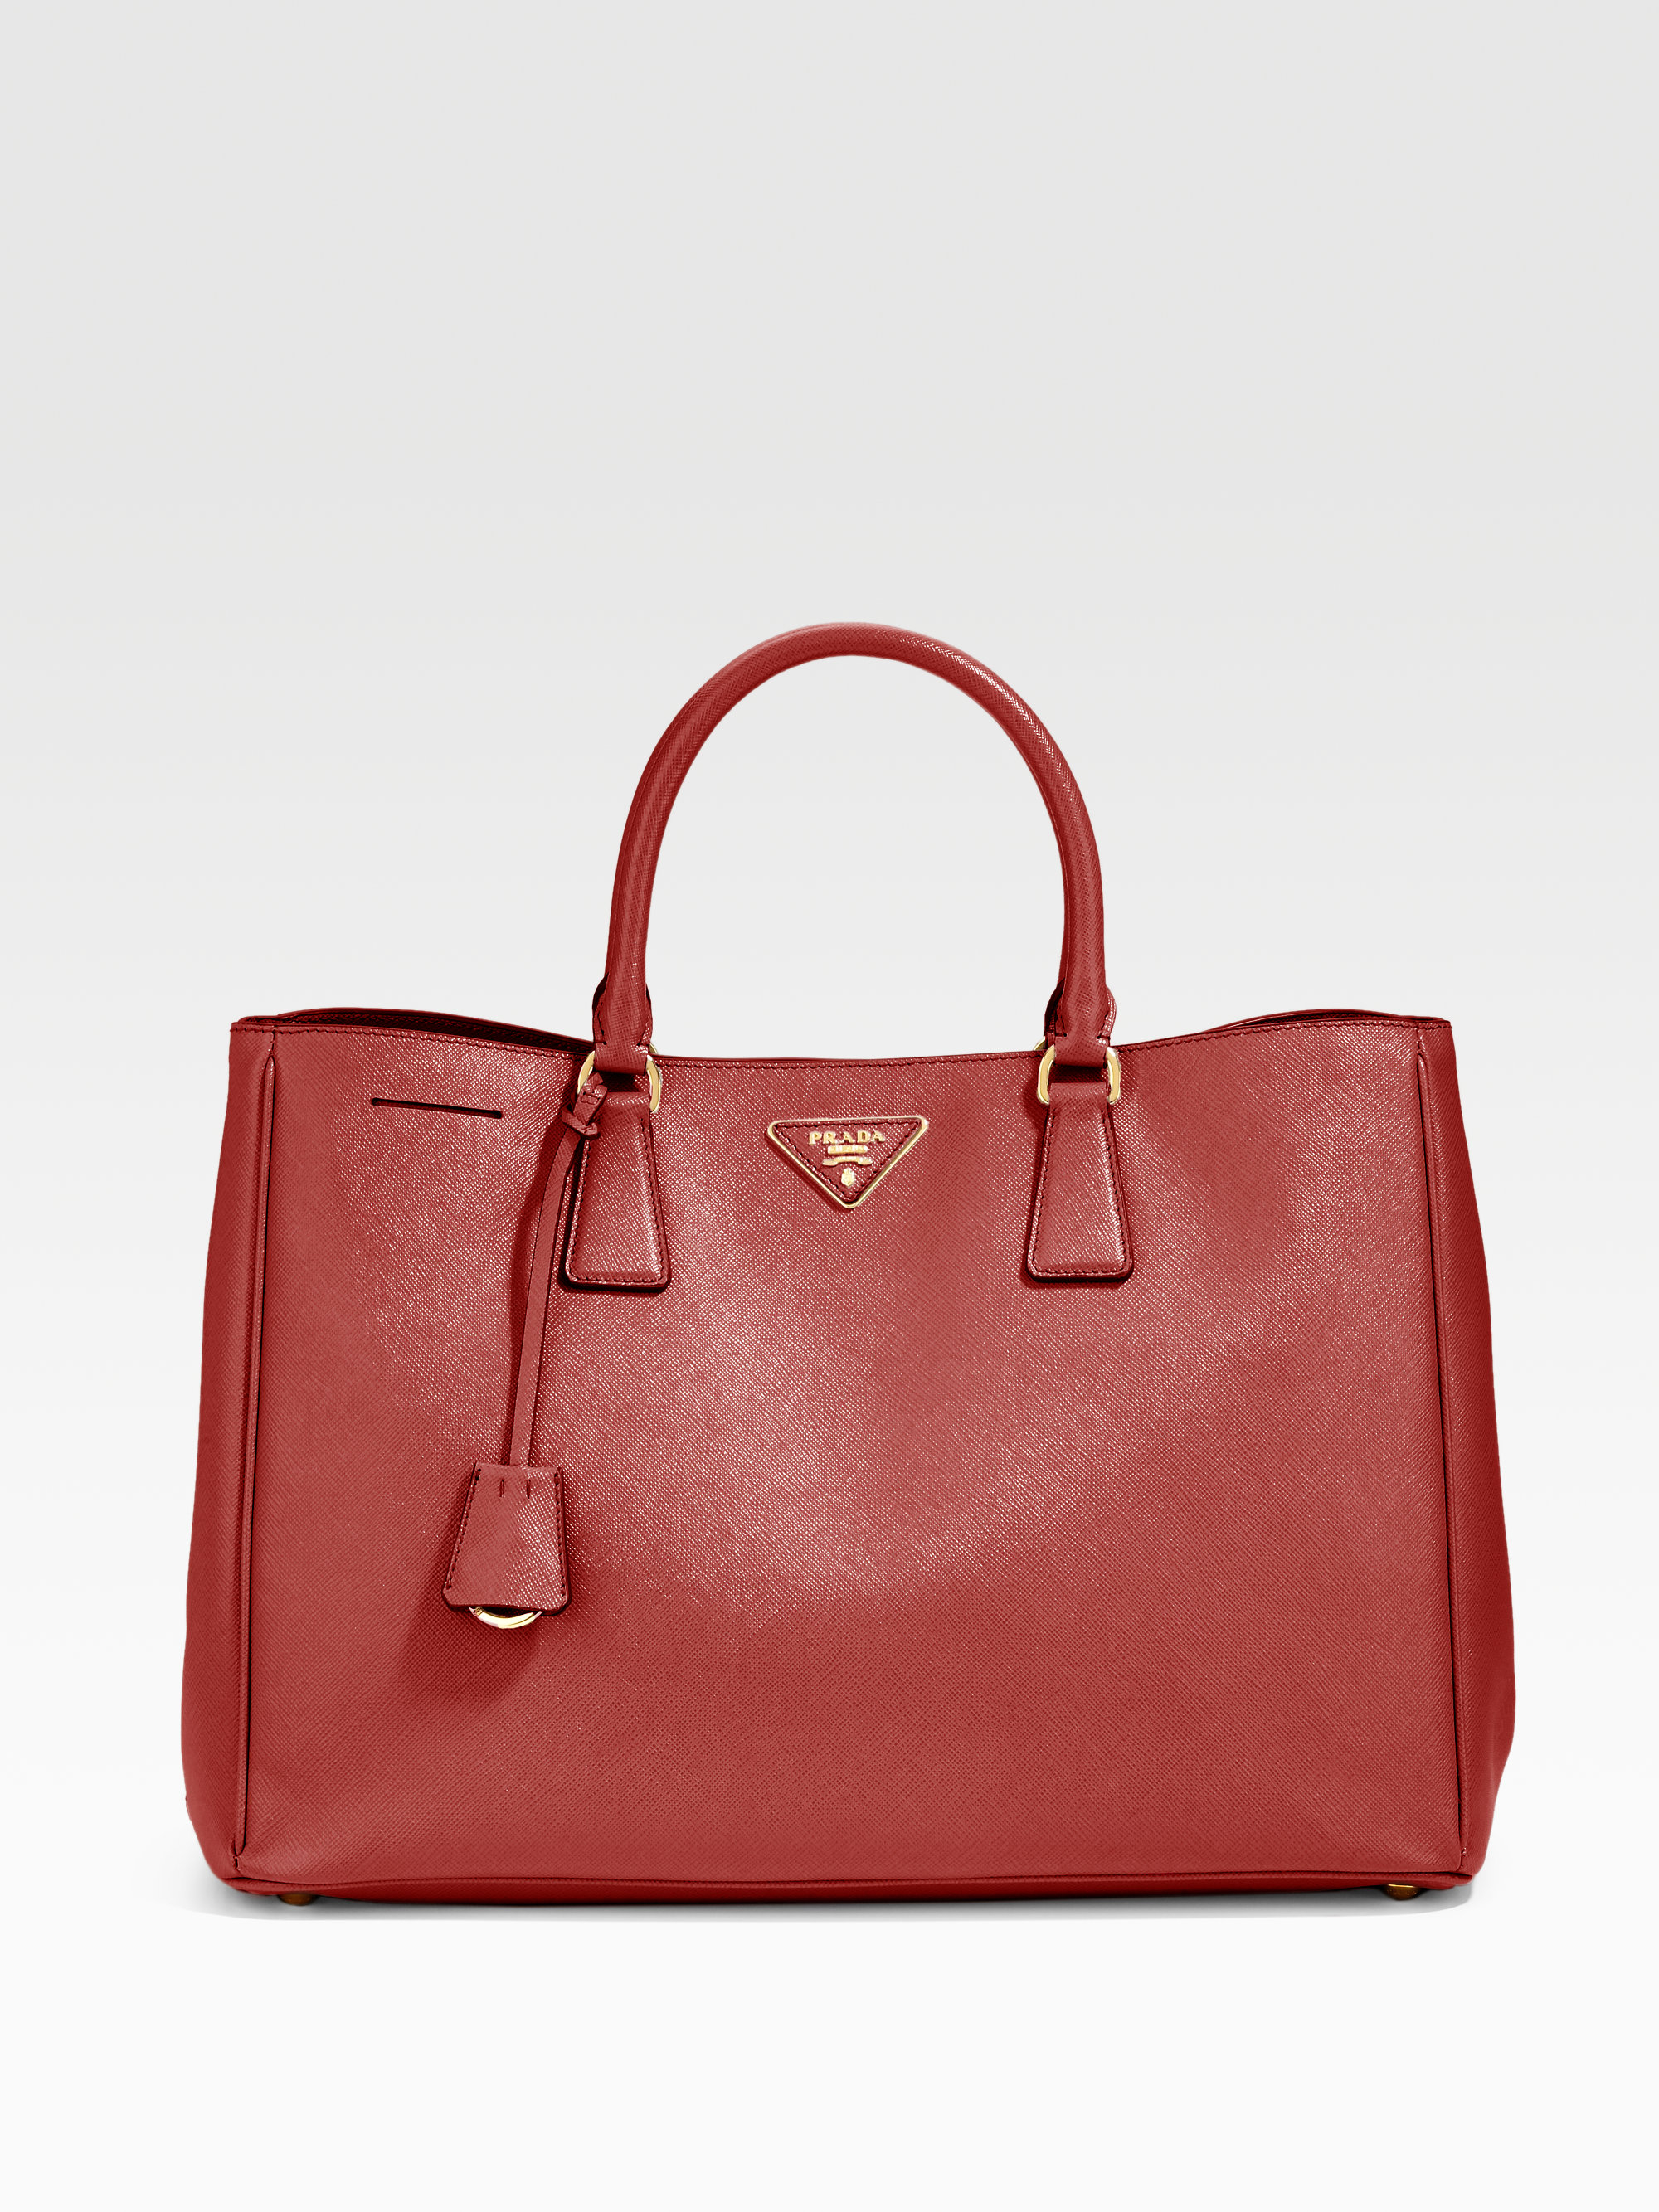 44b90cc5393856 ... discount code for lyst prada saffiano lux tote in red for men 1570b  5cdd3